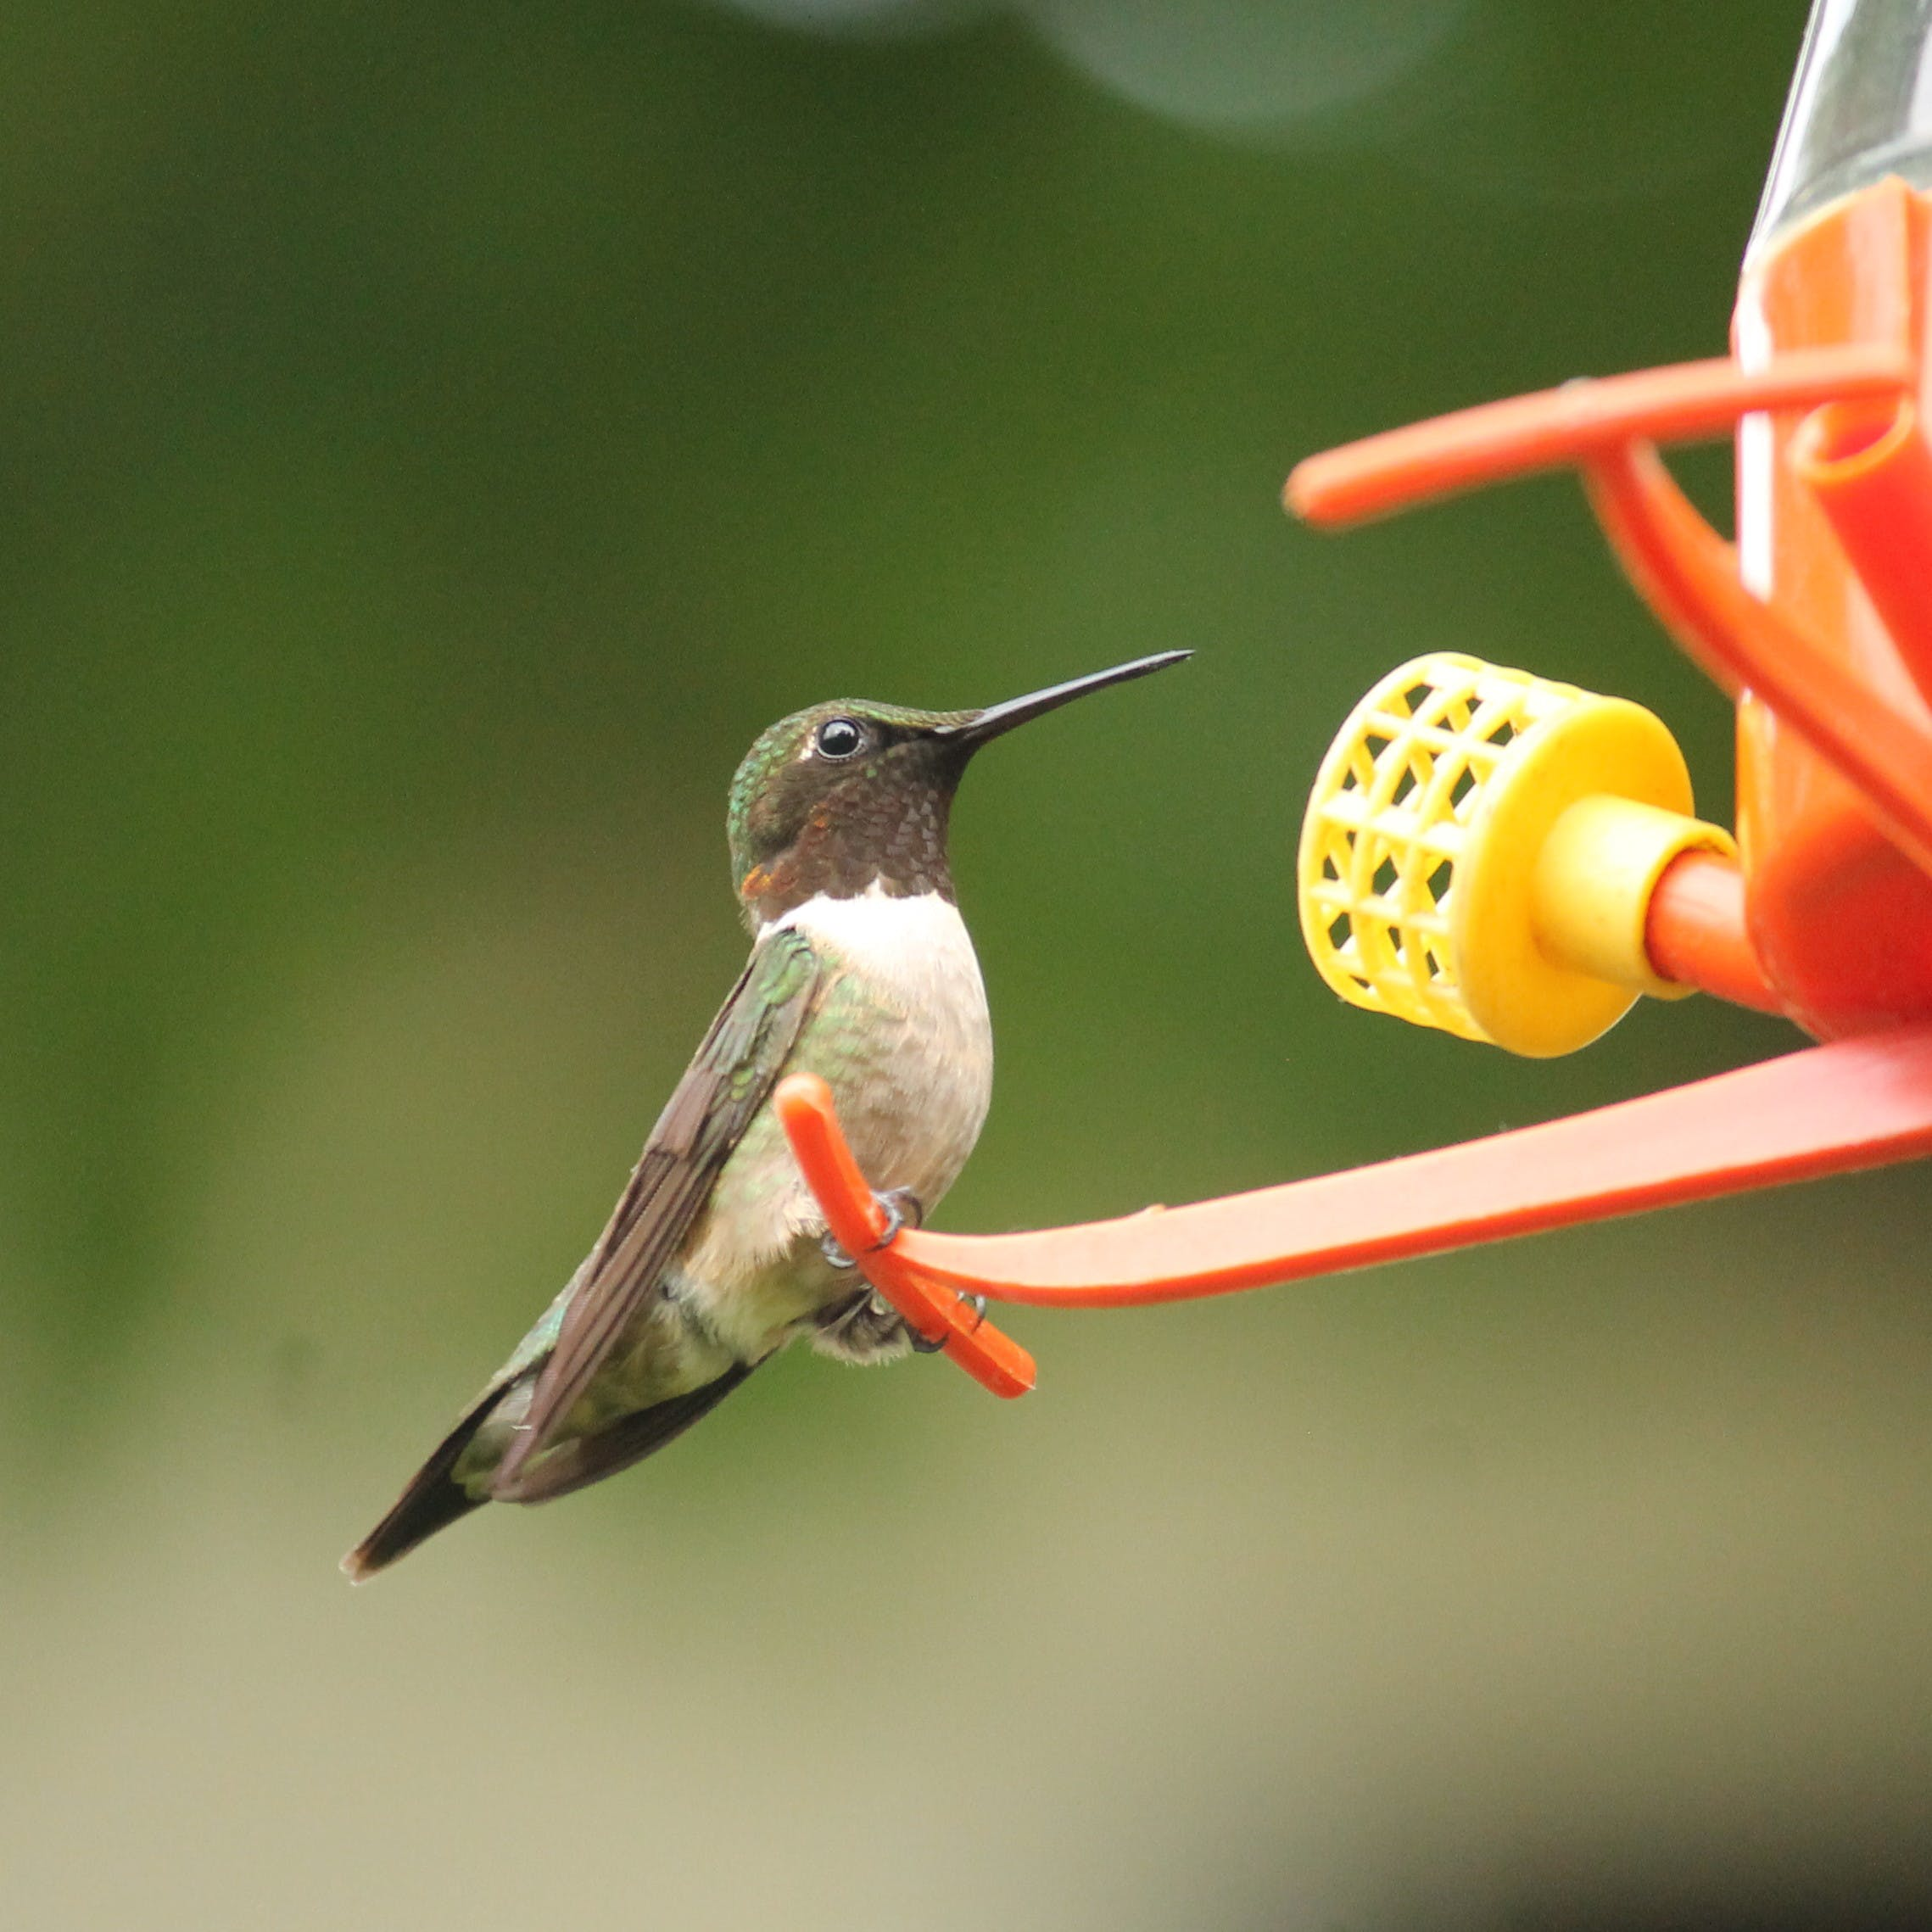 Free stock photo of #birds, hummingbird, nature photography, summer